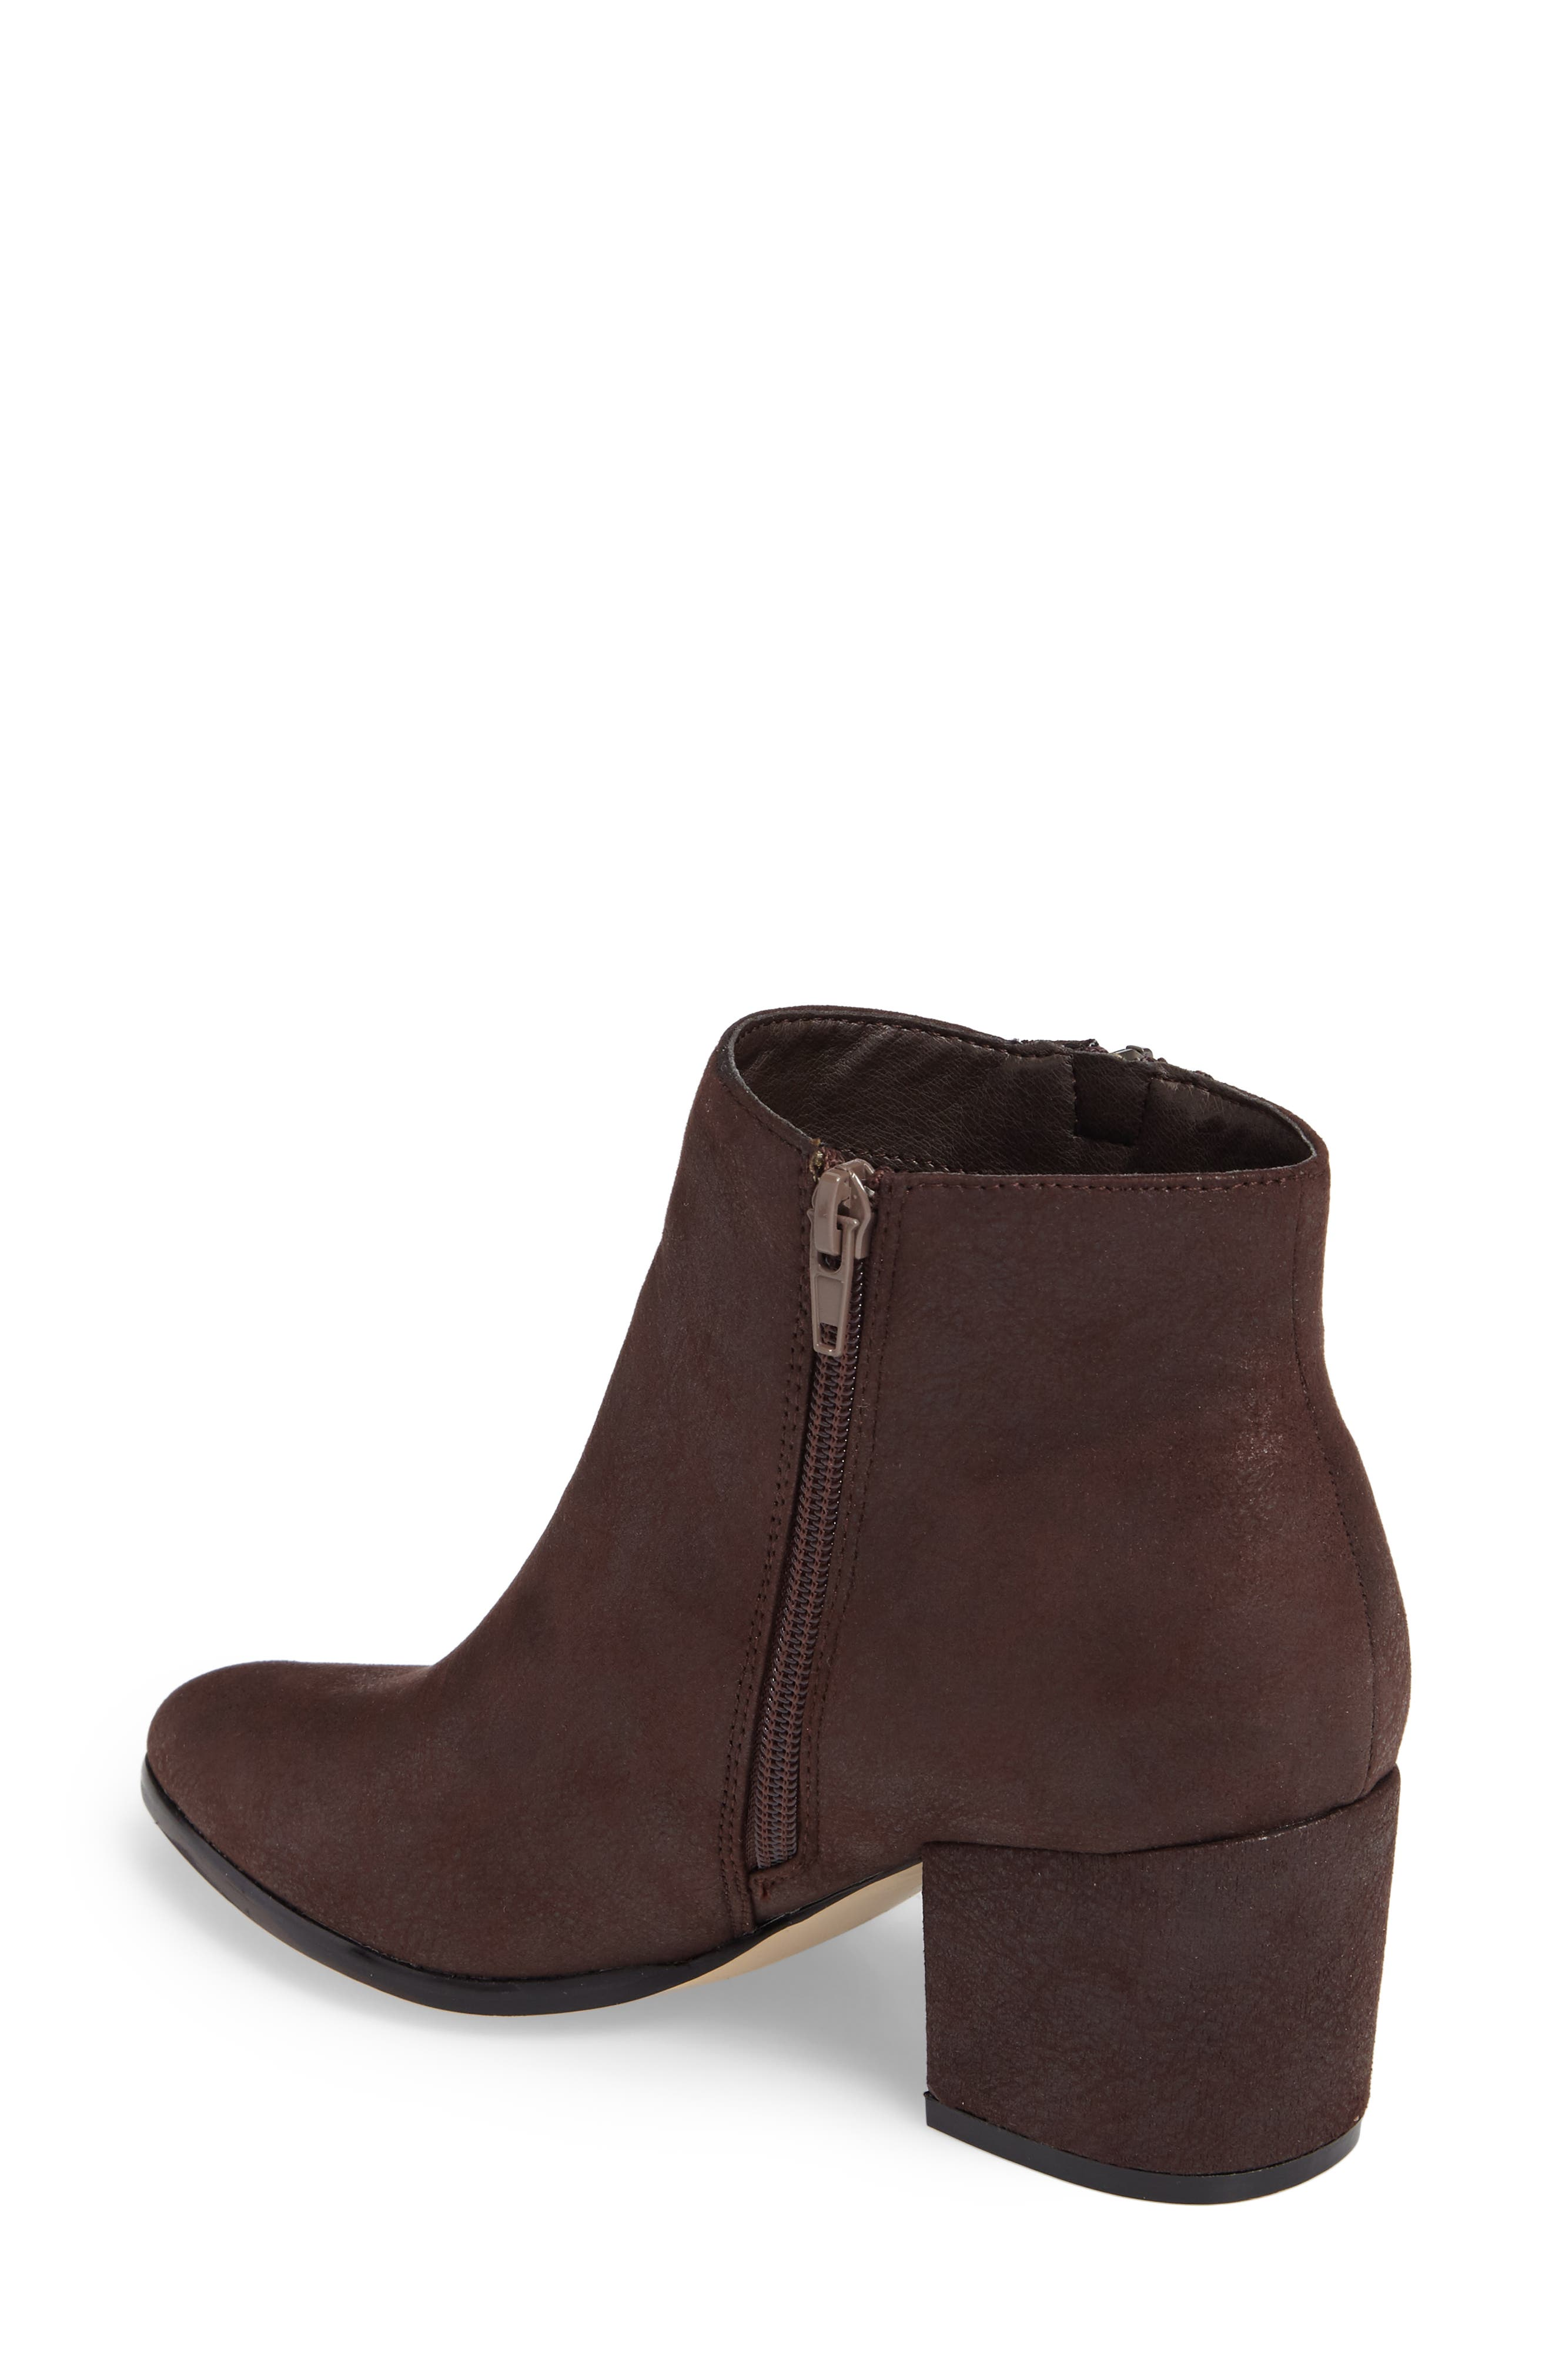 Rhythm Bootie,                             Alternate thumbnail 2, color,                             Brown